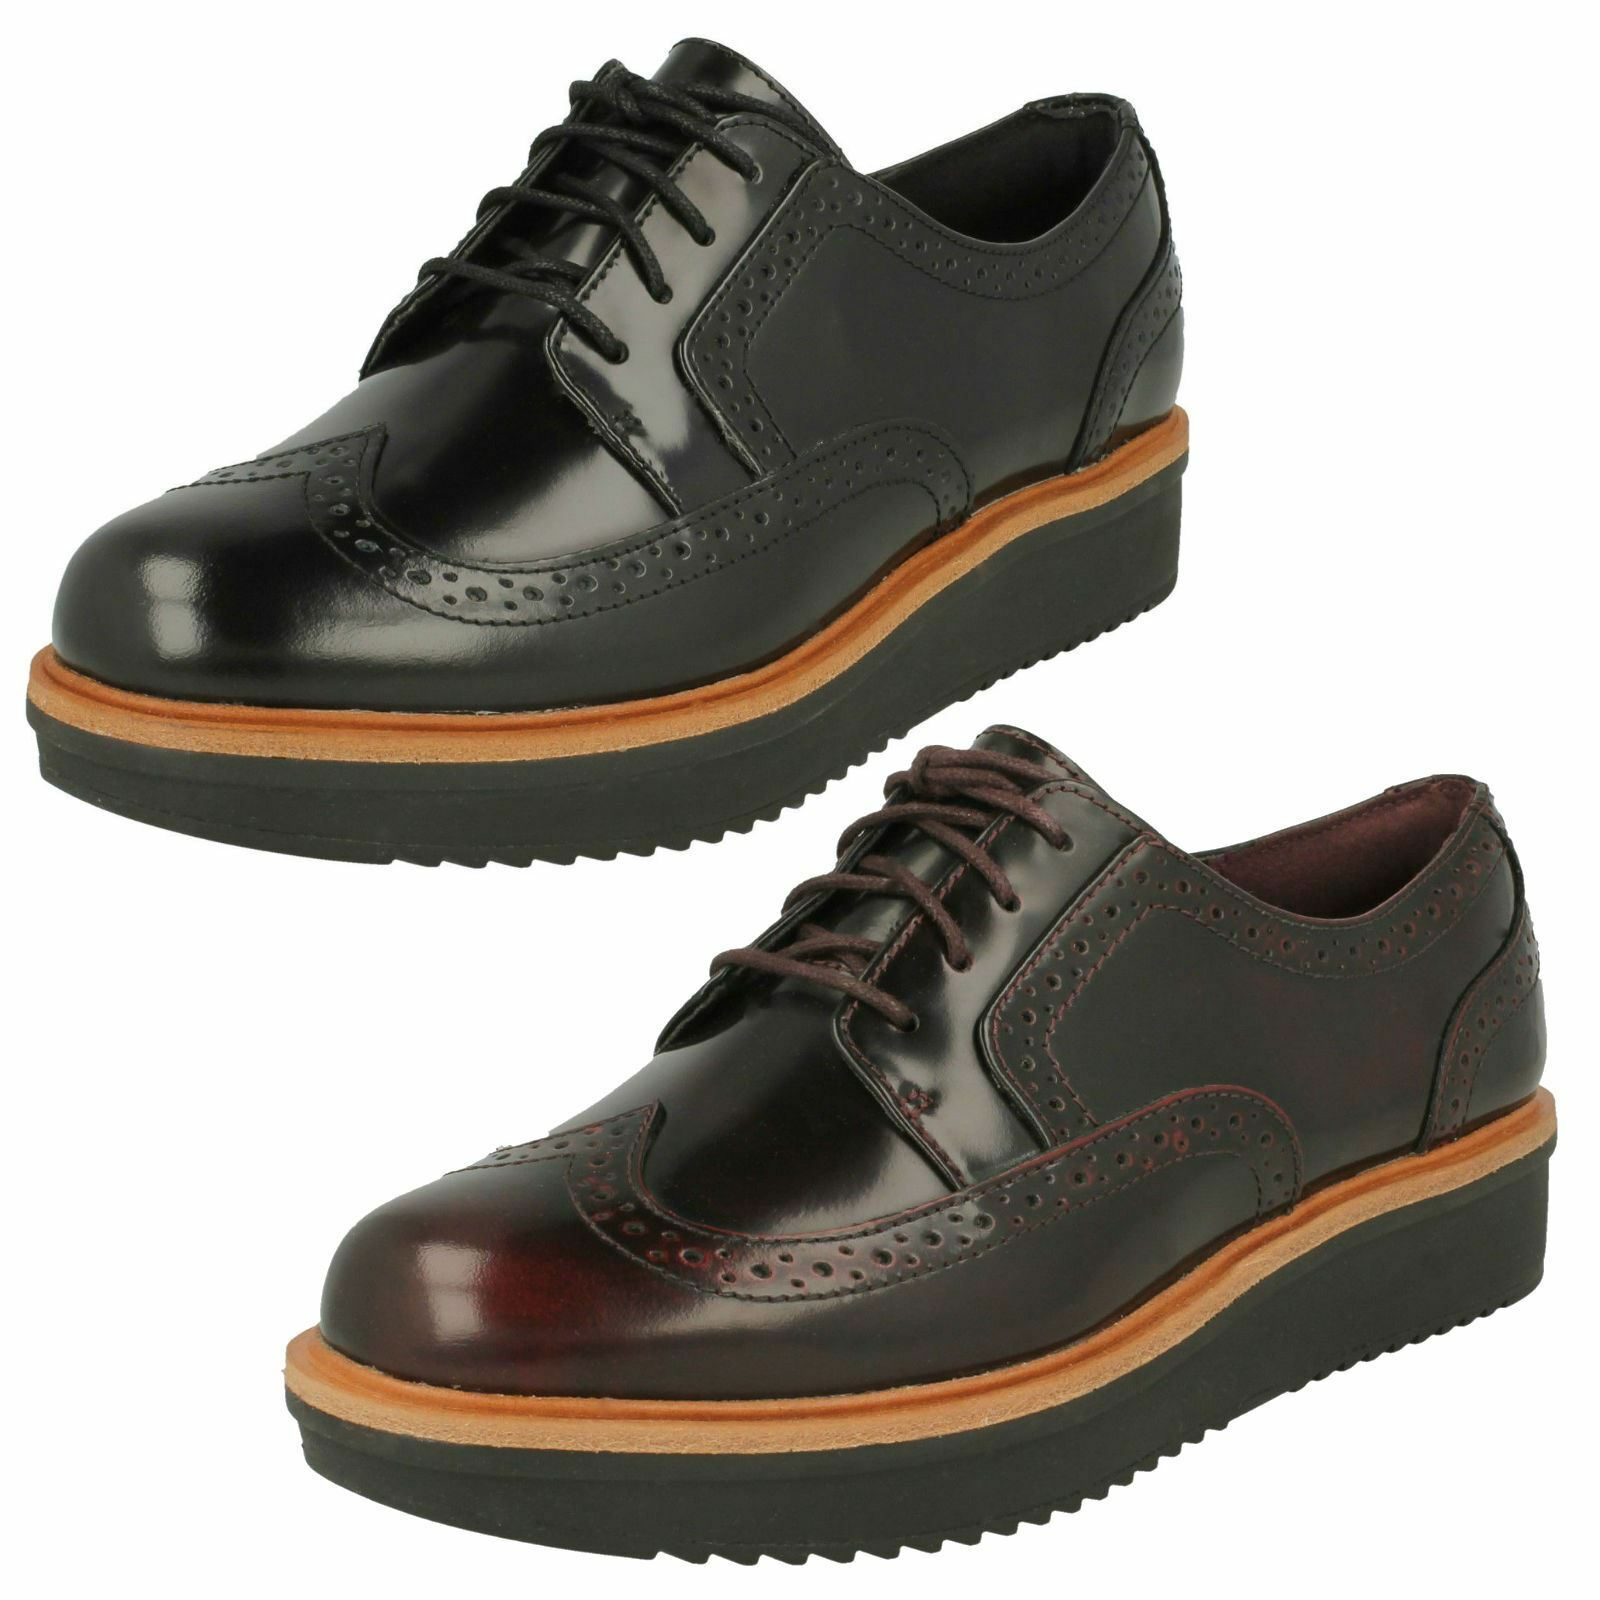 Ladies Clarks Casual Lace-Up Brogue Style shoes Teadale Maira